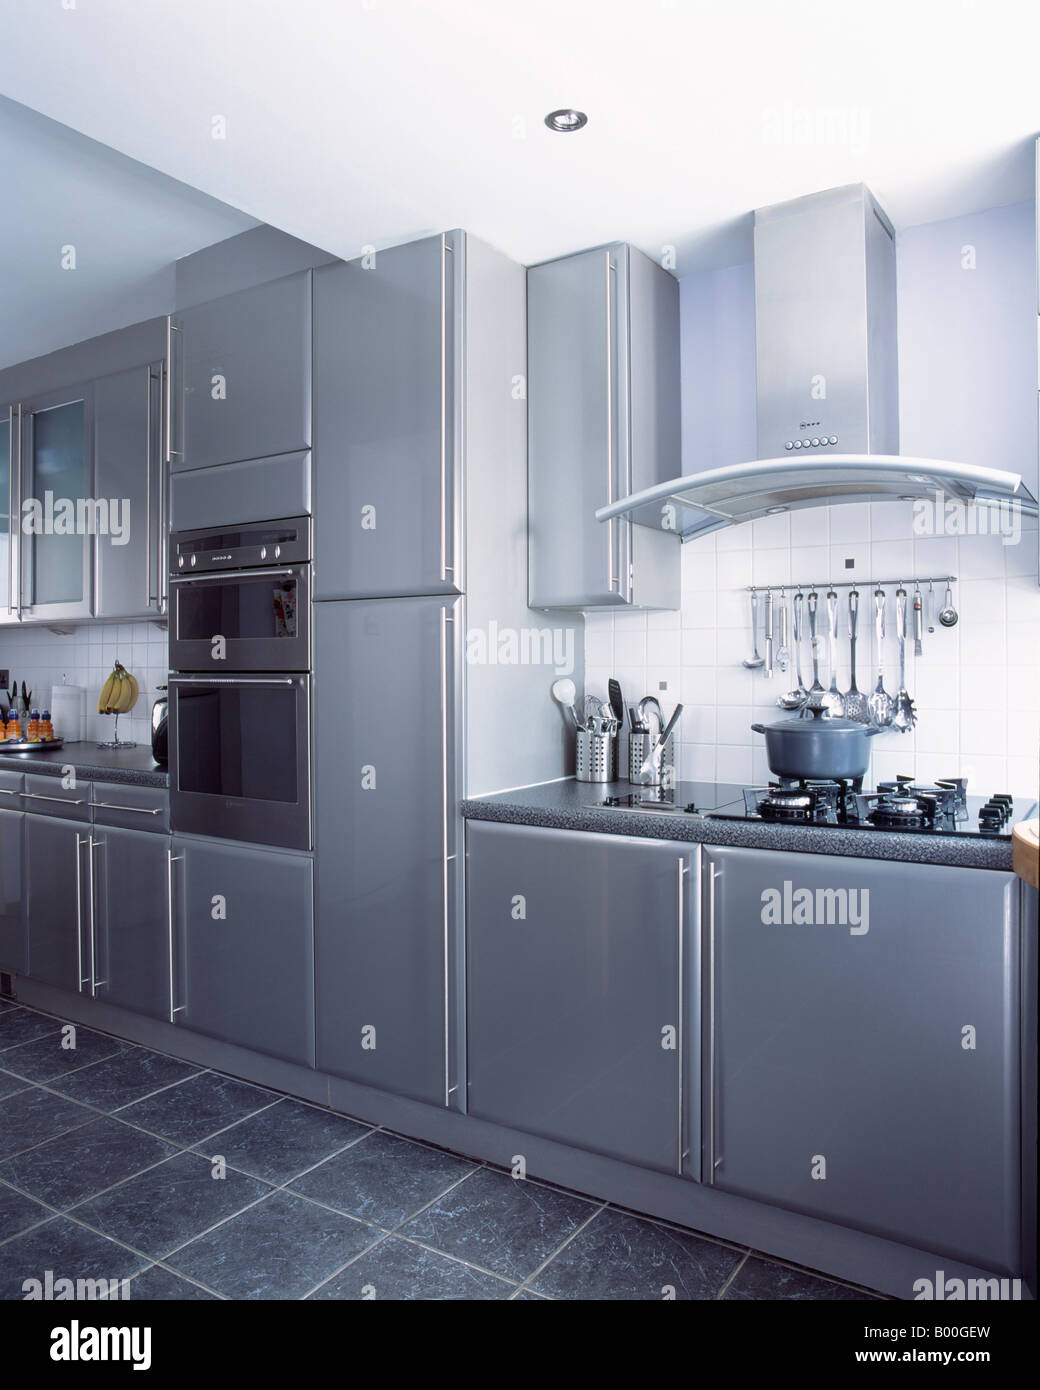 Wall mounted ovens in modern metallic grey kitchen with slate floor ...